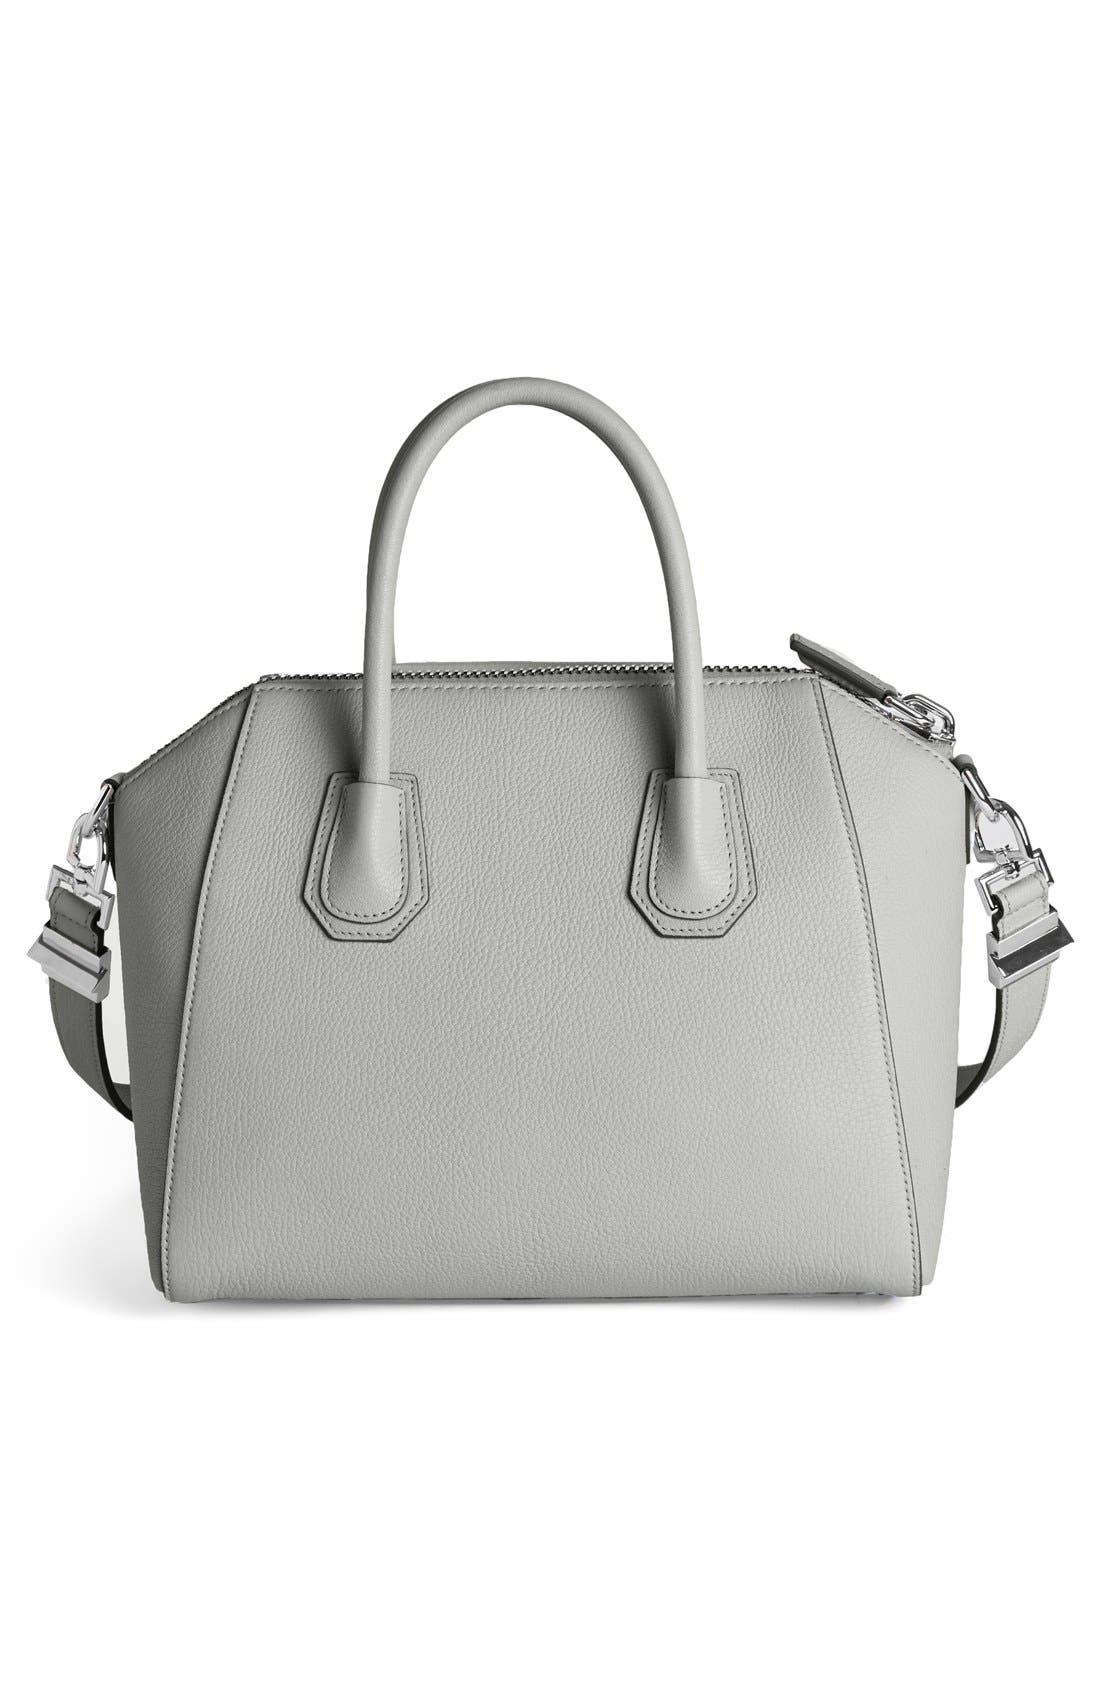 'Small Antigona' Sugar Leather Satchel,                             Alternate thumbnail 9, color,